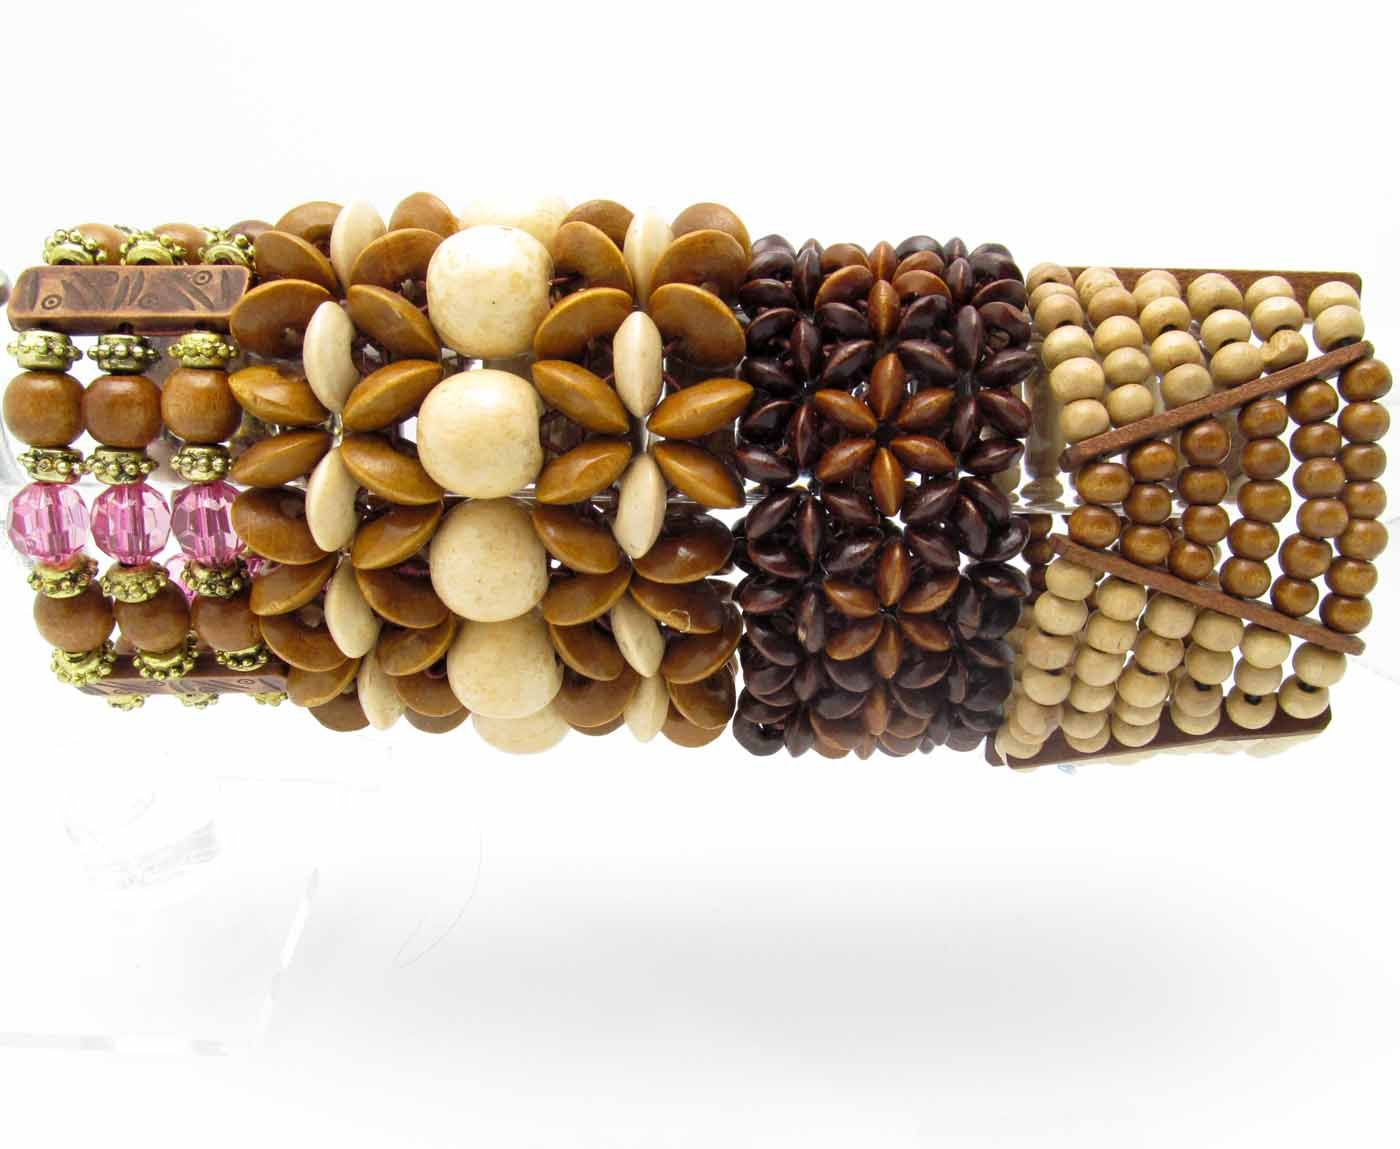 products beads mindfulness bead wooden product buddhist image bracelet wood market